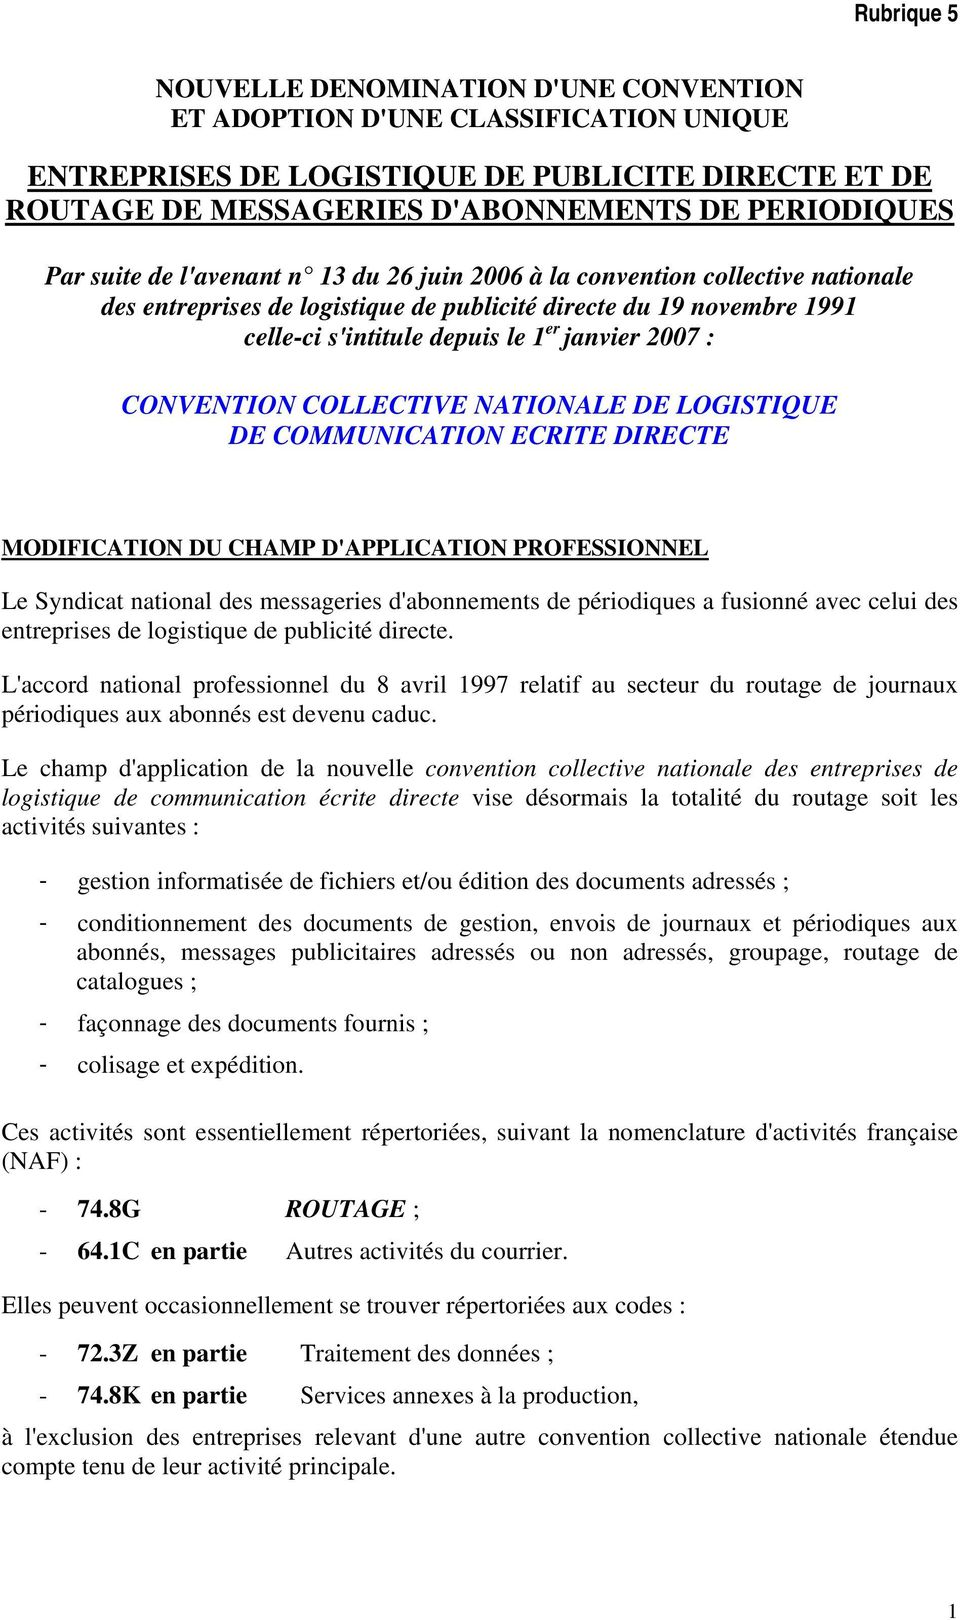 CONVENTION COLLECTIVE NATIONALE DE LOGISTIQUE DE COMMUNICATION ECRITE DIRECTE MODIFICATION DU CHAMP D'APPLICATION PROFESSIONNEL Le Syndicat national des messageries d'abonnements de périodiques a